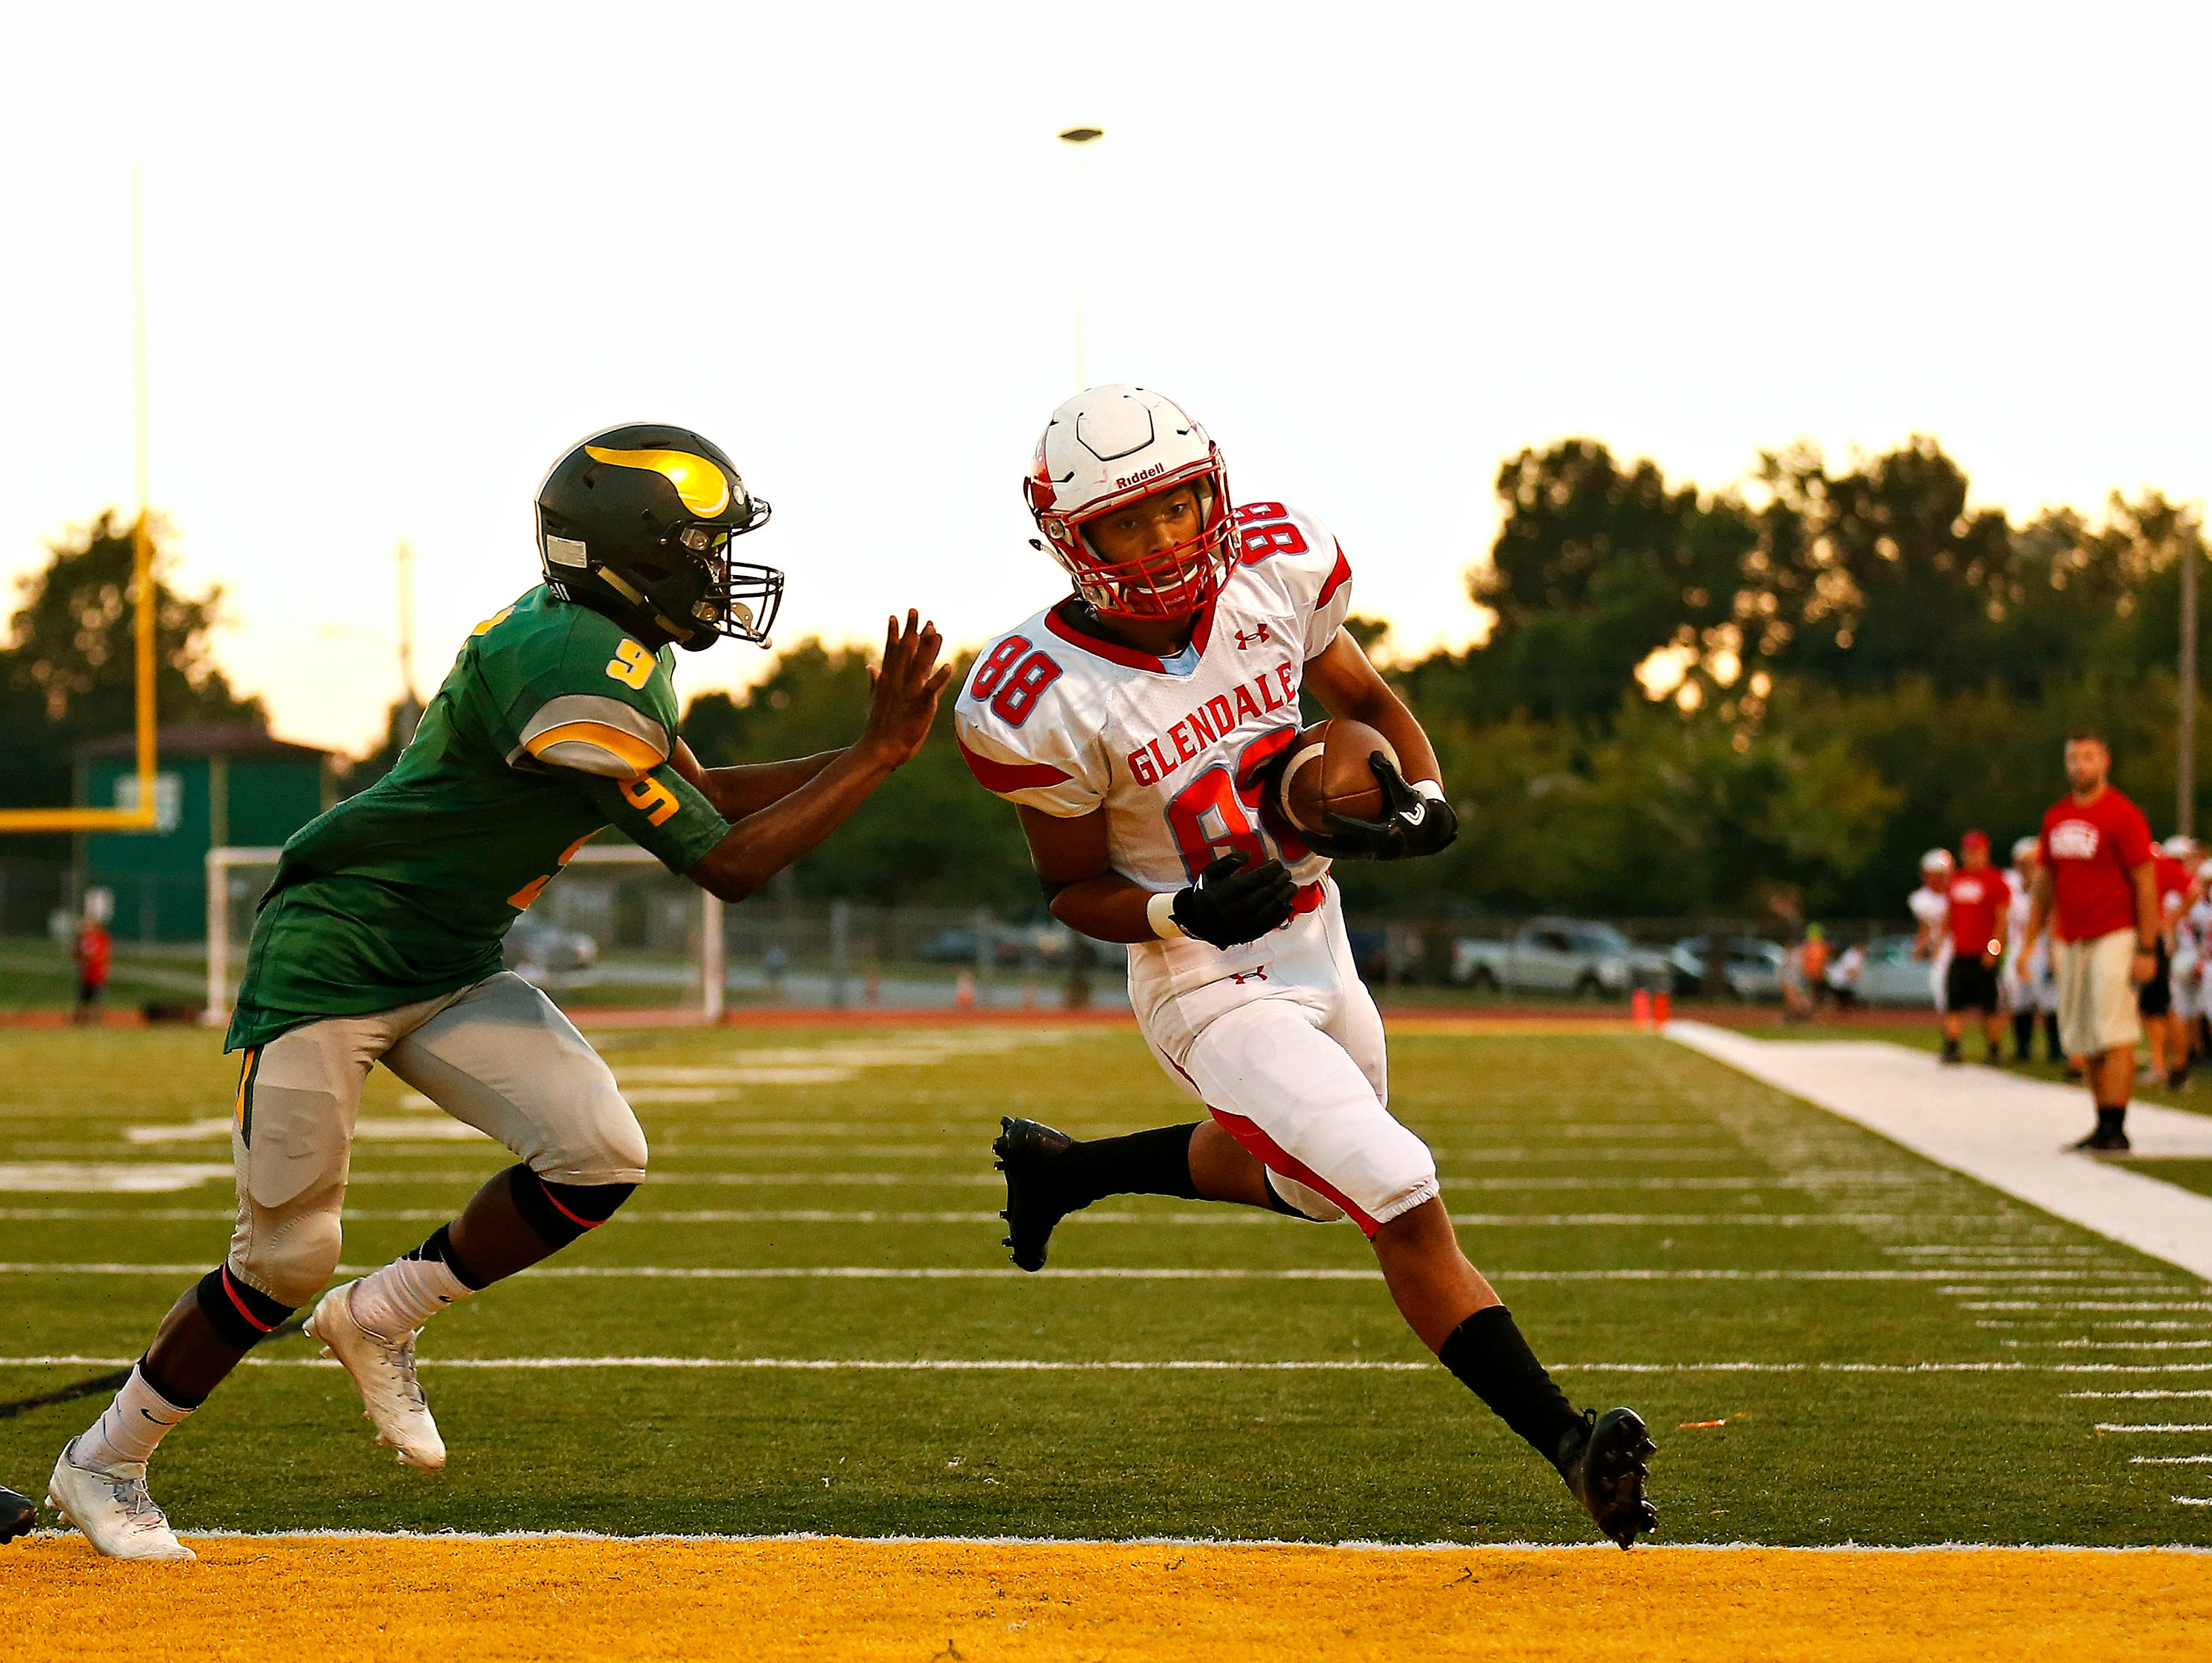 Glendale High School wide receiver Jeremy Almeida (88) runs past Viking defensive back Warren Atkins (9) to score a touchdown during first quarter action of the football game between Glendale High School and Parkview High School at JFK Stadium in Springfield, Mo. on Sept. 22, 2016.